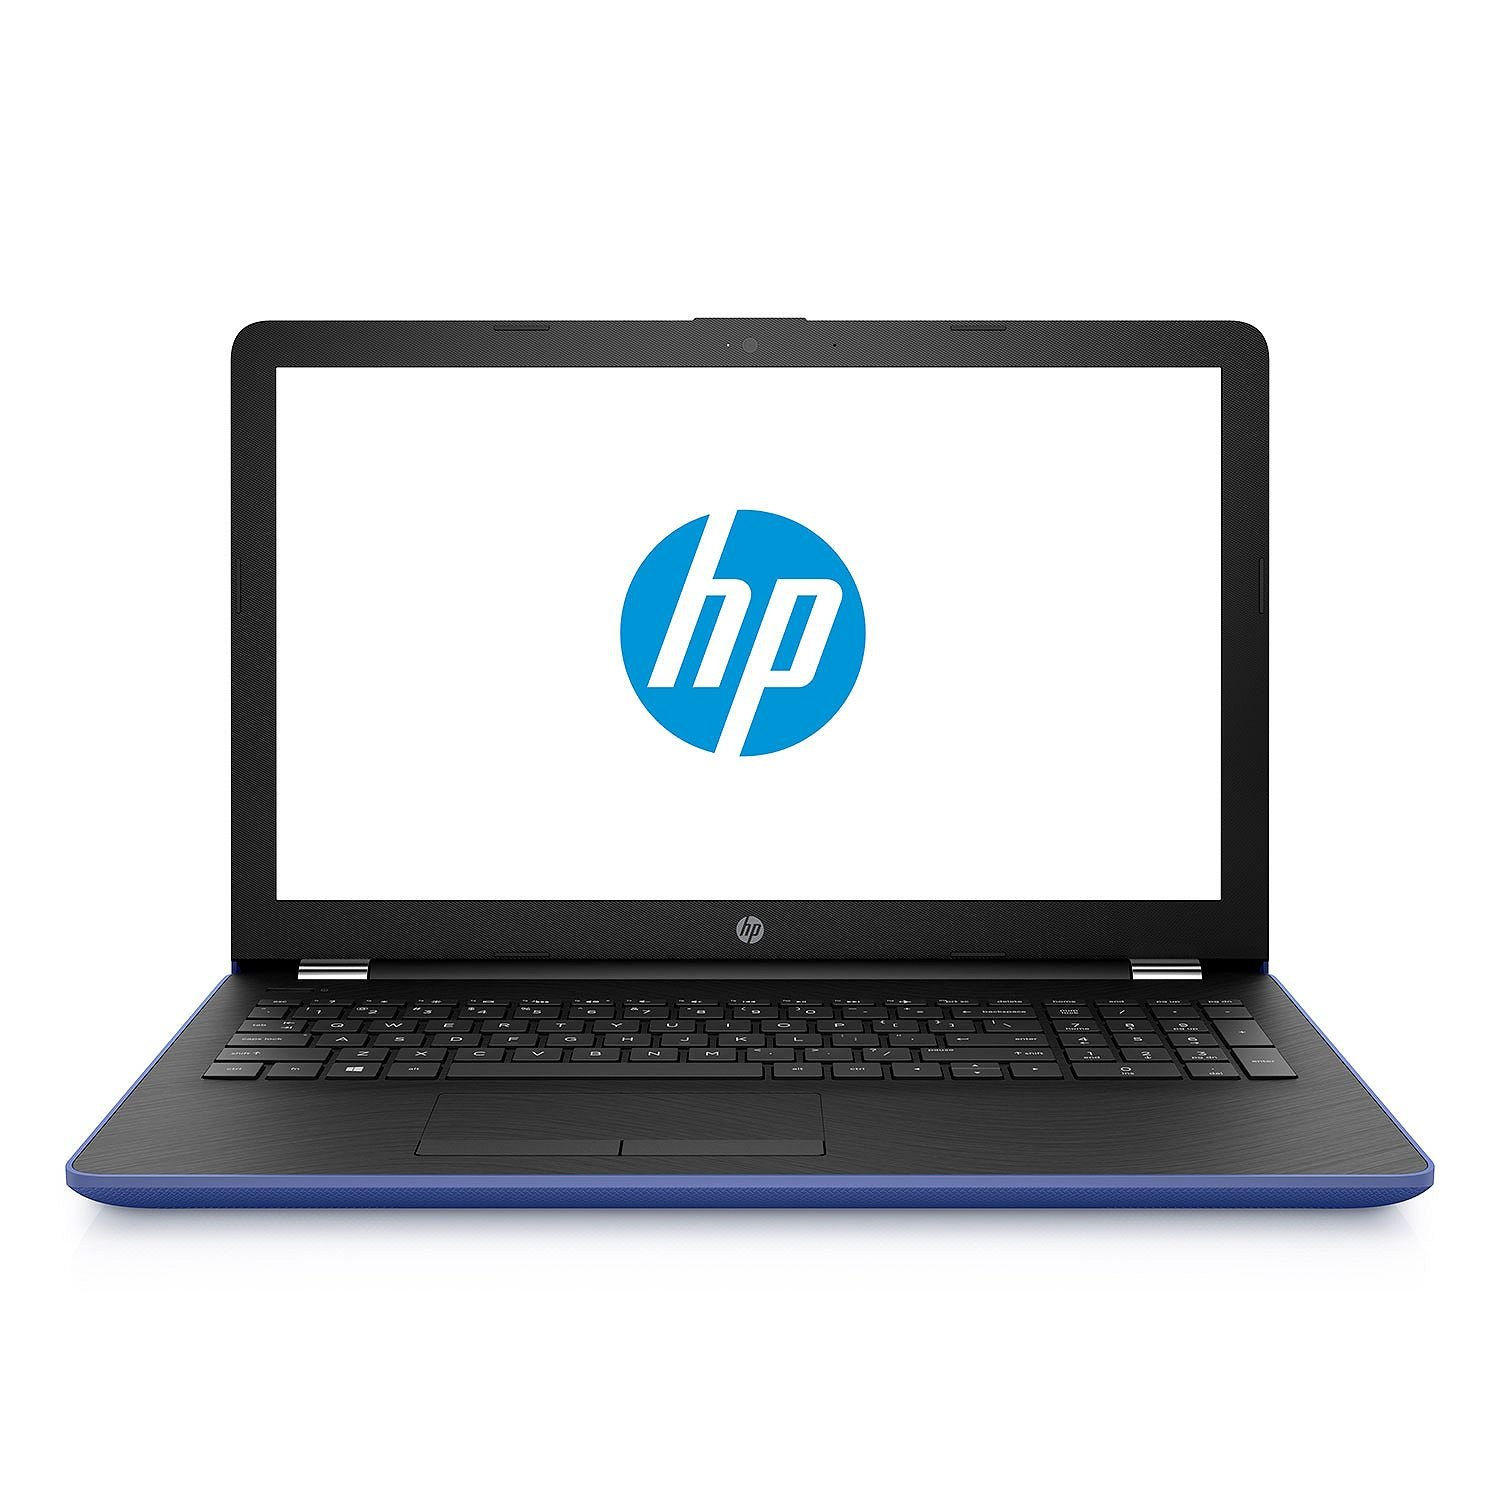 Amazon.com: 2018 Flagship HP 15.6 Inch Flagship Notebook Laptop Computer (Intel Core i5-8250U 1.6GHz, 16GB DDR4 RAM, 128GB SSD, HD dual speakers, ...